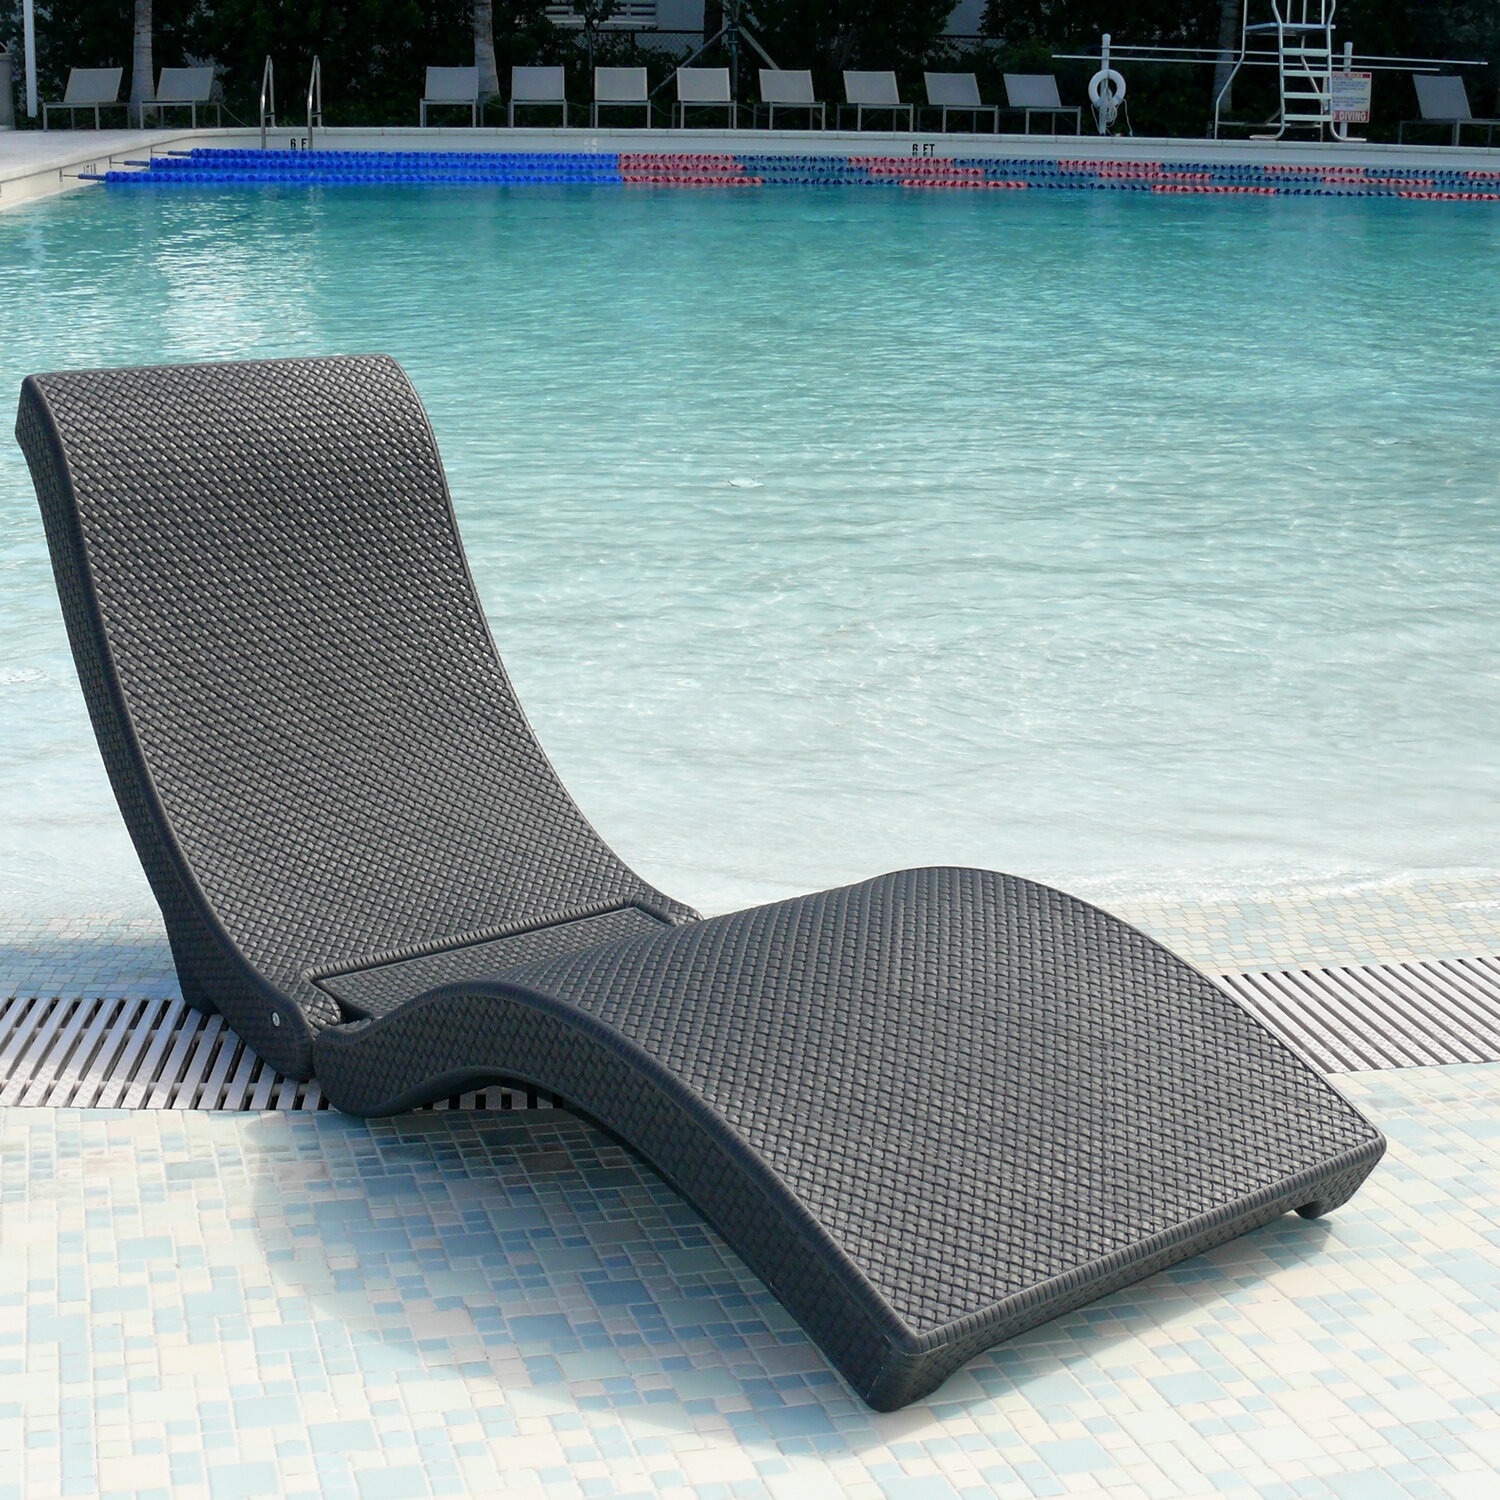 Charcoal The Splash Chaise Lounge Chair Outdoor Beach Sun Lawn Patio Pool New